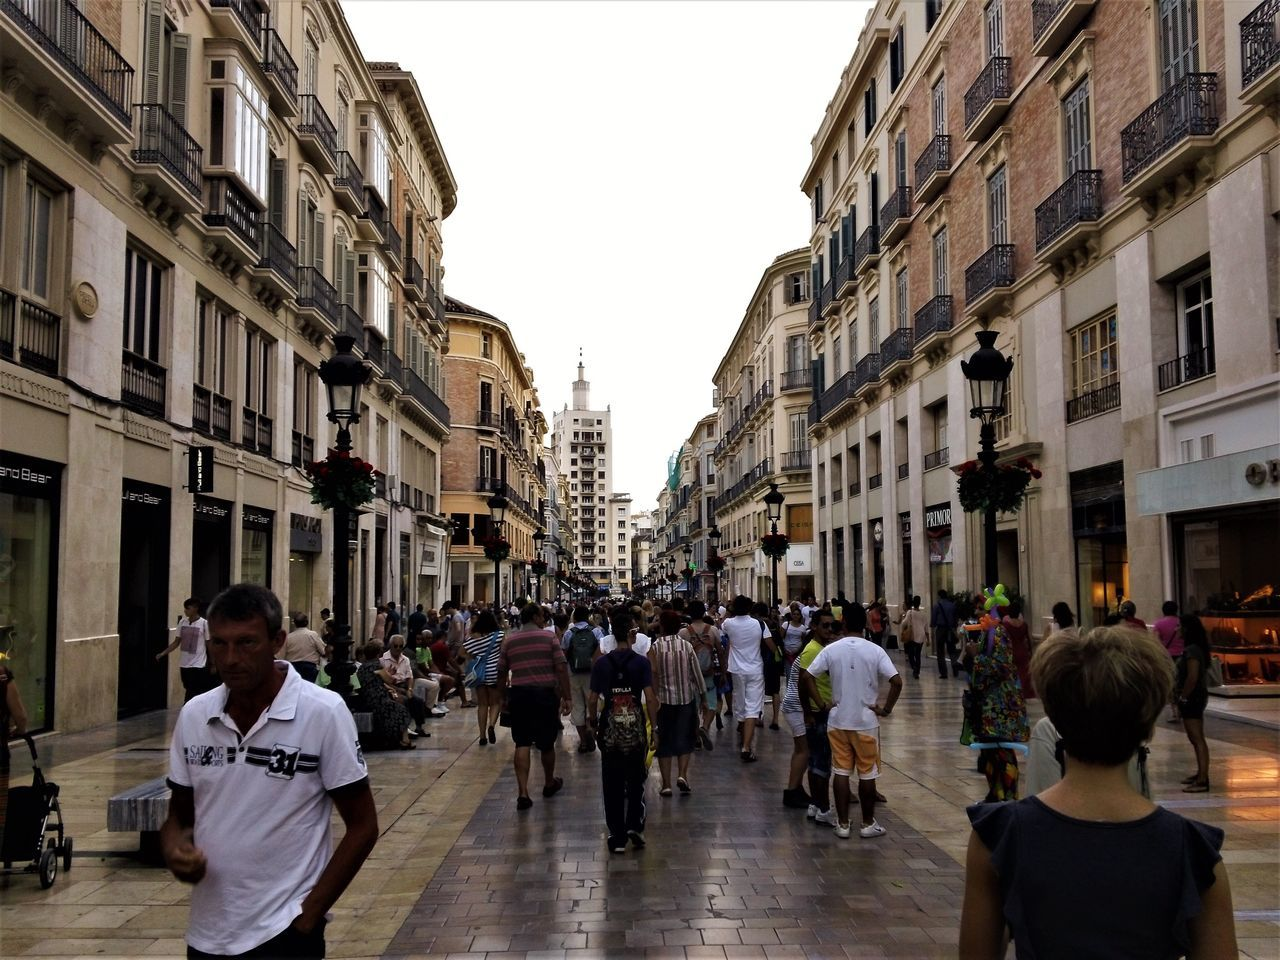 Building Exterior Architecture Built Structure Large Group Of People City Streetphotography Eyeem Architecture Malaga EyeEmNewHere Crowd Busy Street DayyReal PeopleeAdulttOutdoorssPeoplee Skyy